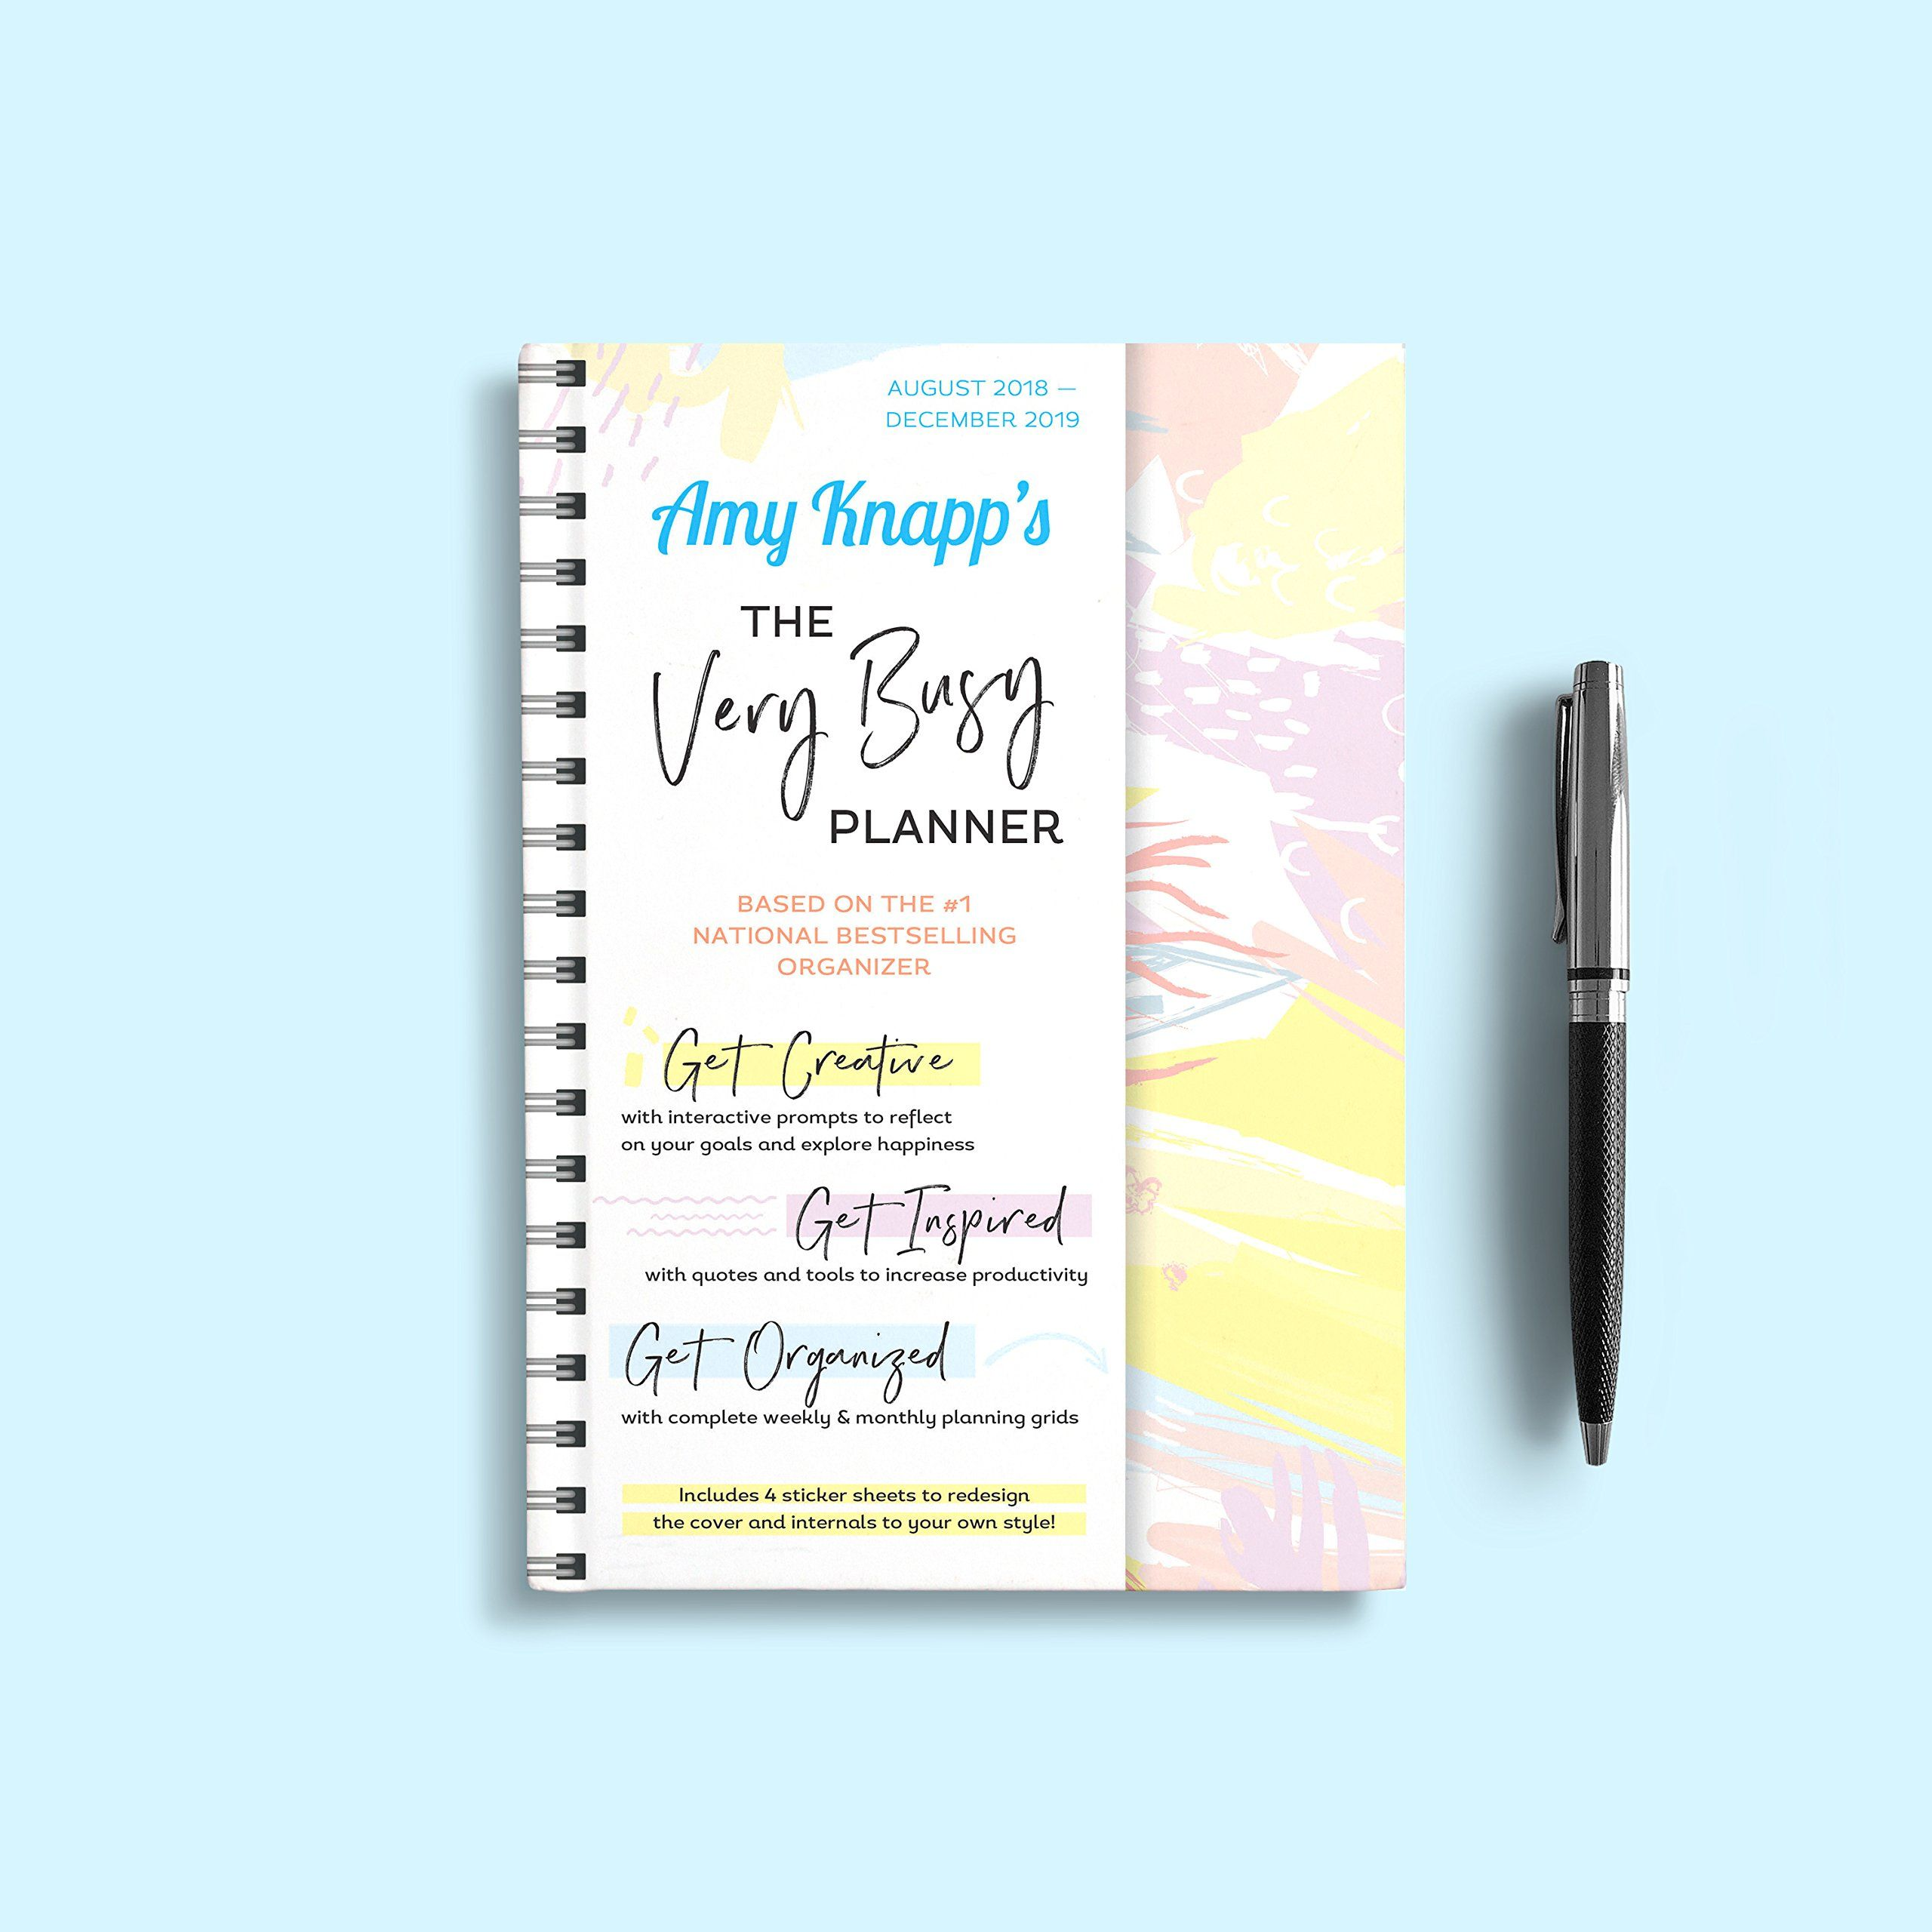 image regarding May Books Planner known as 2019 Amy Knapps The Pretty Active Planner: August 2018-December